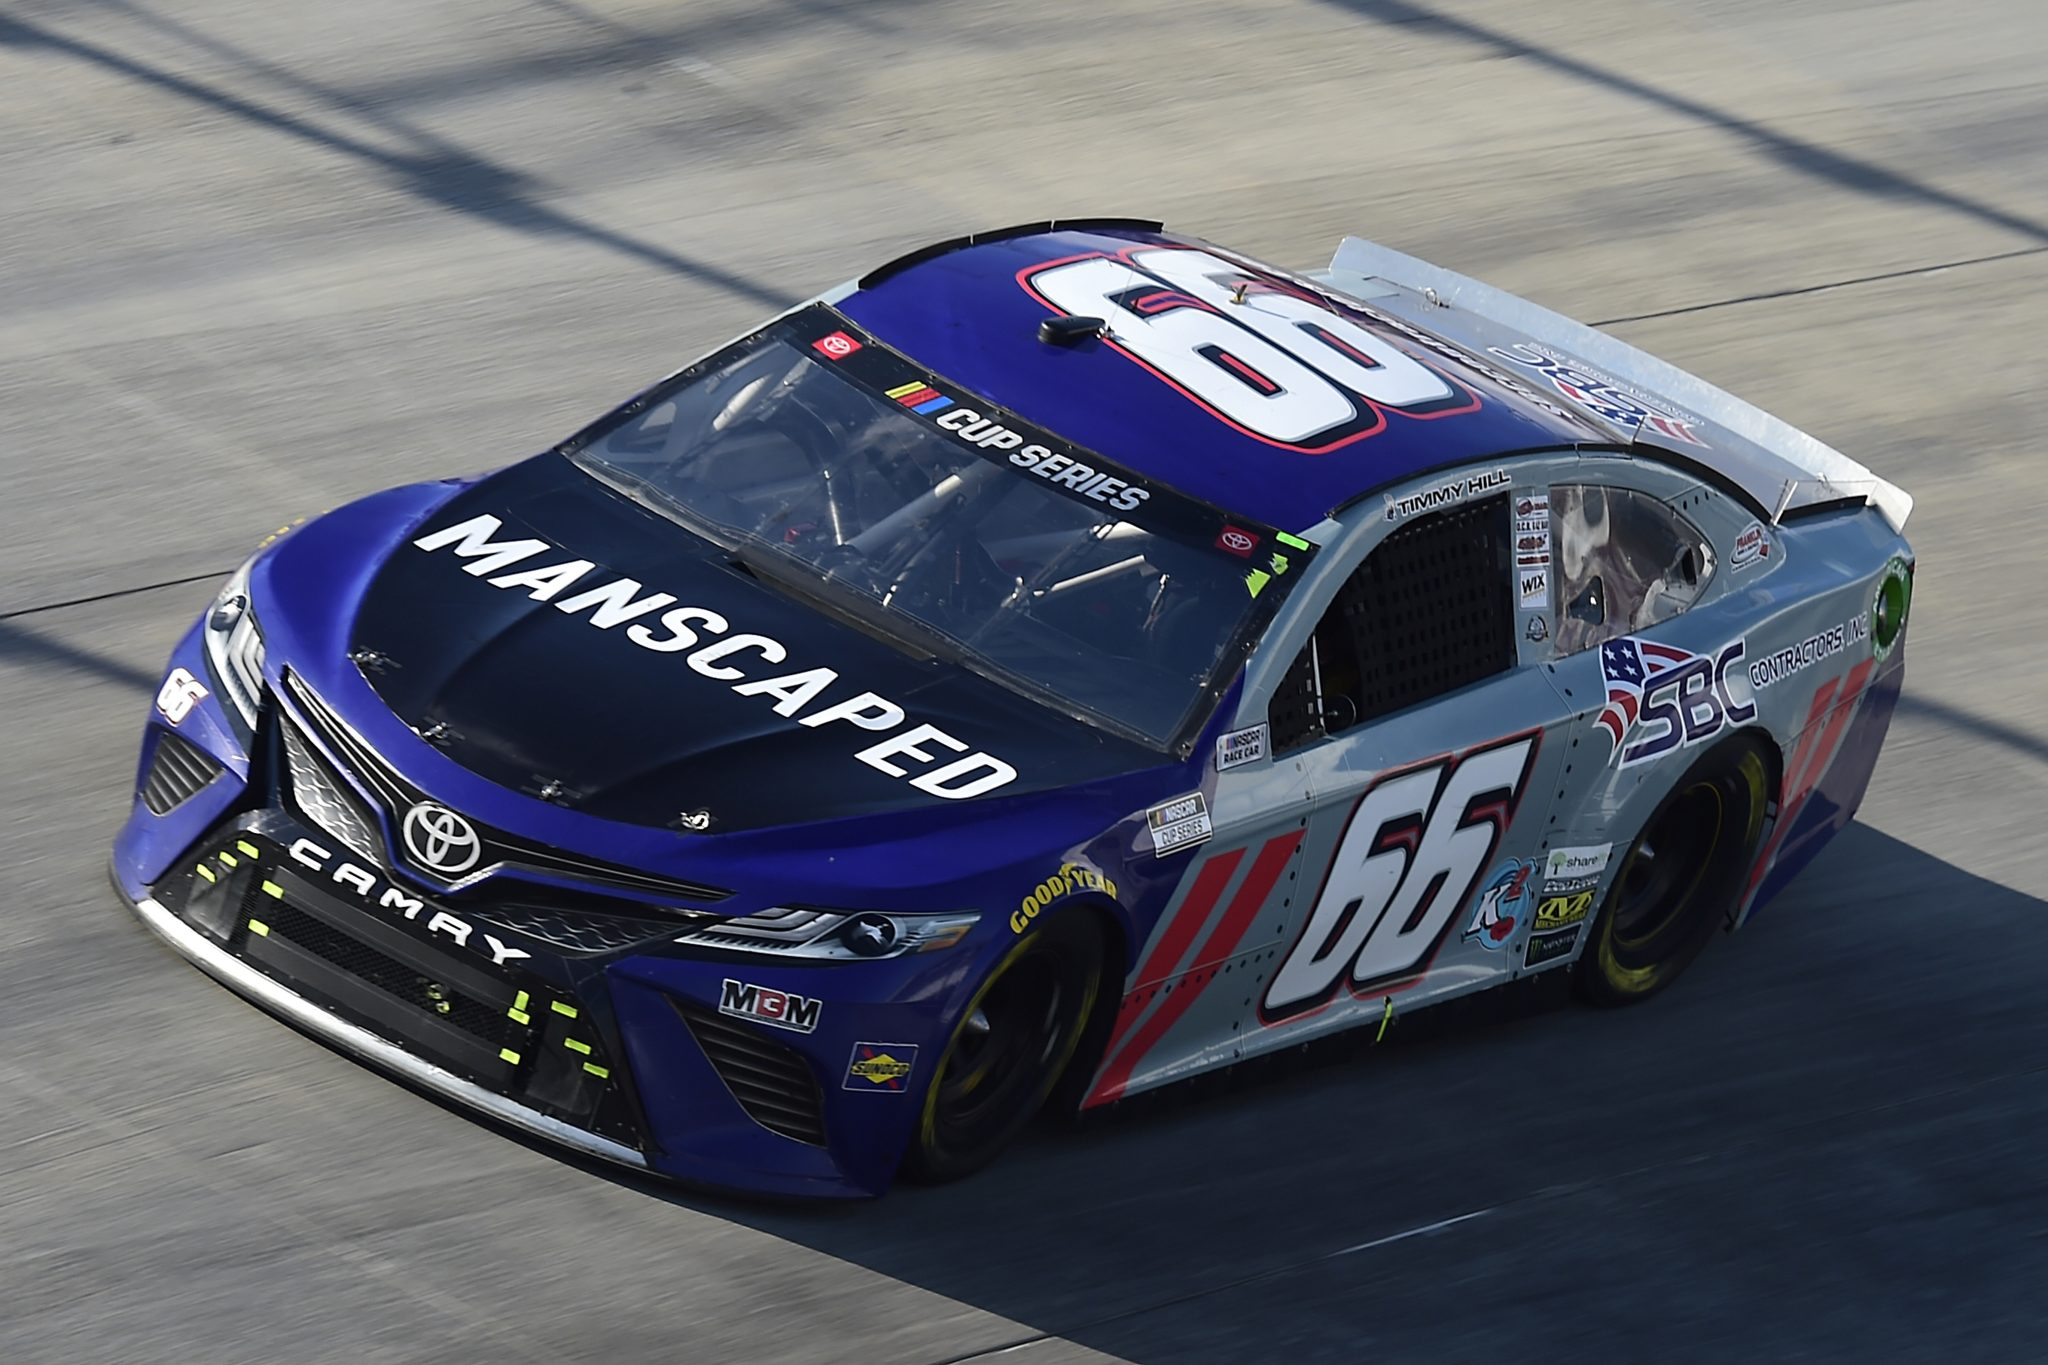 DOVER, DELAWARE - AUGUST 23: Timmy Hill, driver of the #66 Manscaped Toyota, drives during the NASCAR Cup Series Drydene 311 at Dover International Speedway on August 23, 2020 in Dover, Delaware. (Photo by Jared C. Tilton/Getty Images) | Getty Images